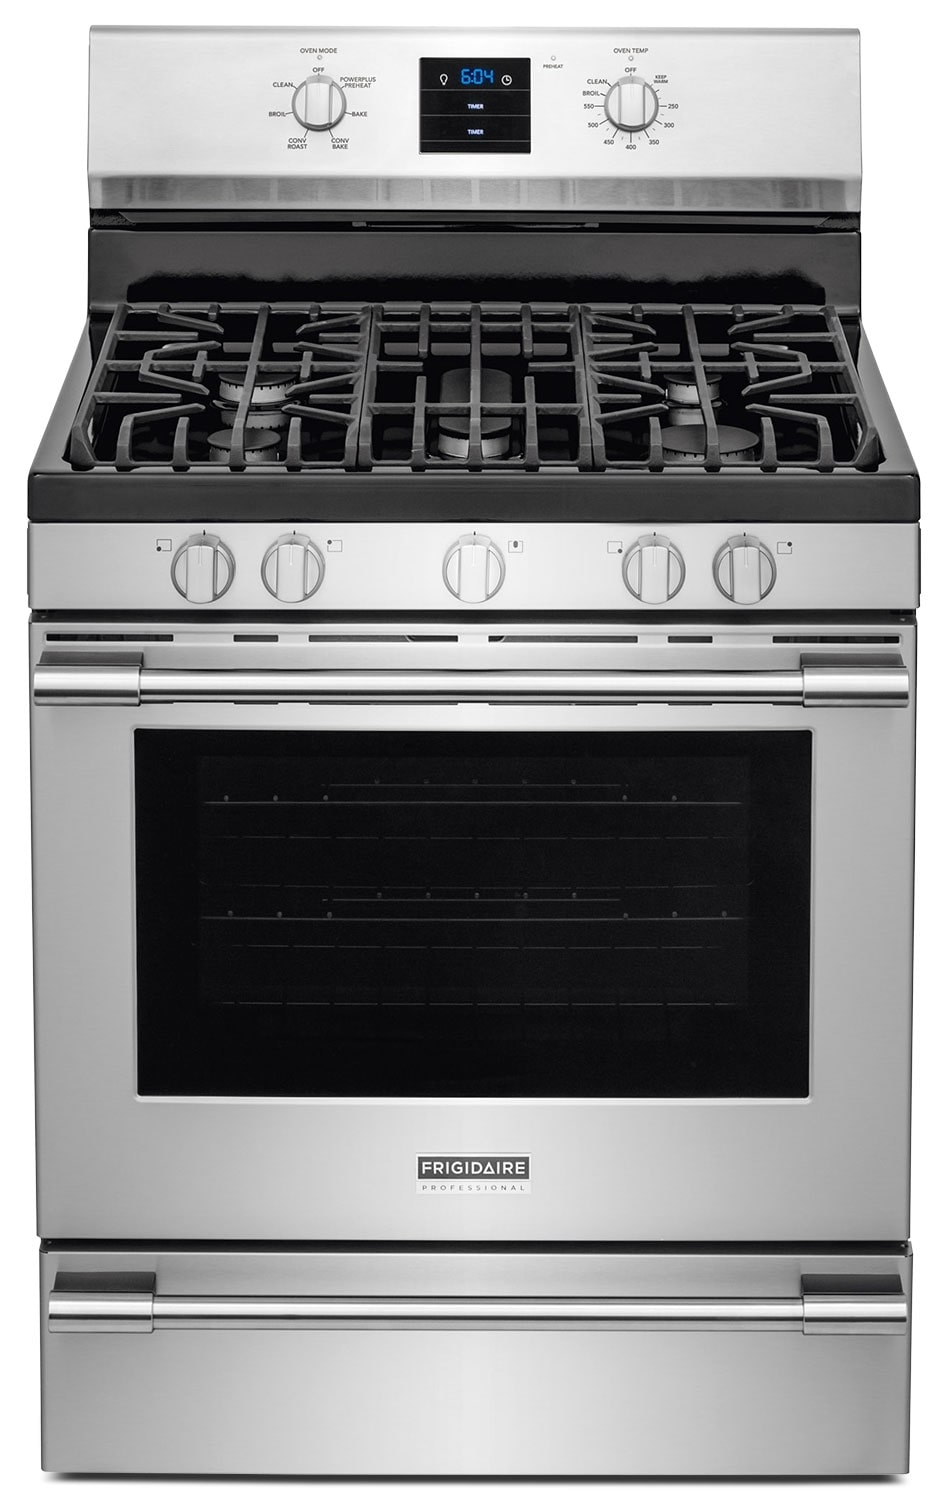 Cooking Products - Frigidaire Professional Stainless Steel Freestanding Gas Convection Range (5.6 Cu. Ft.) - FPGF3077QF